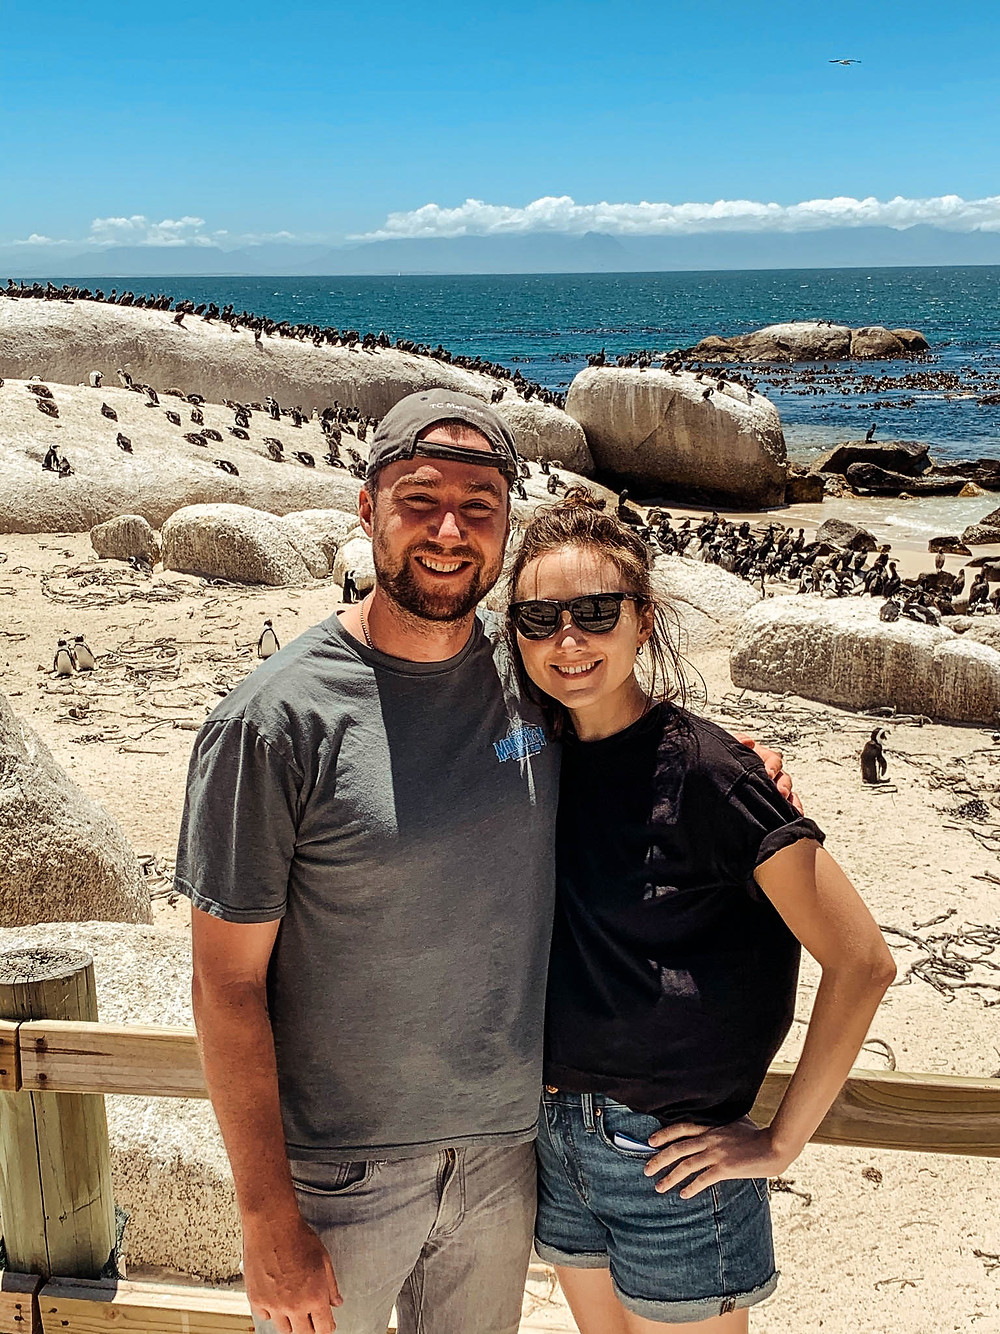 At Boulders Beach with what seemed like thousands of African Penguins